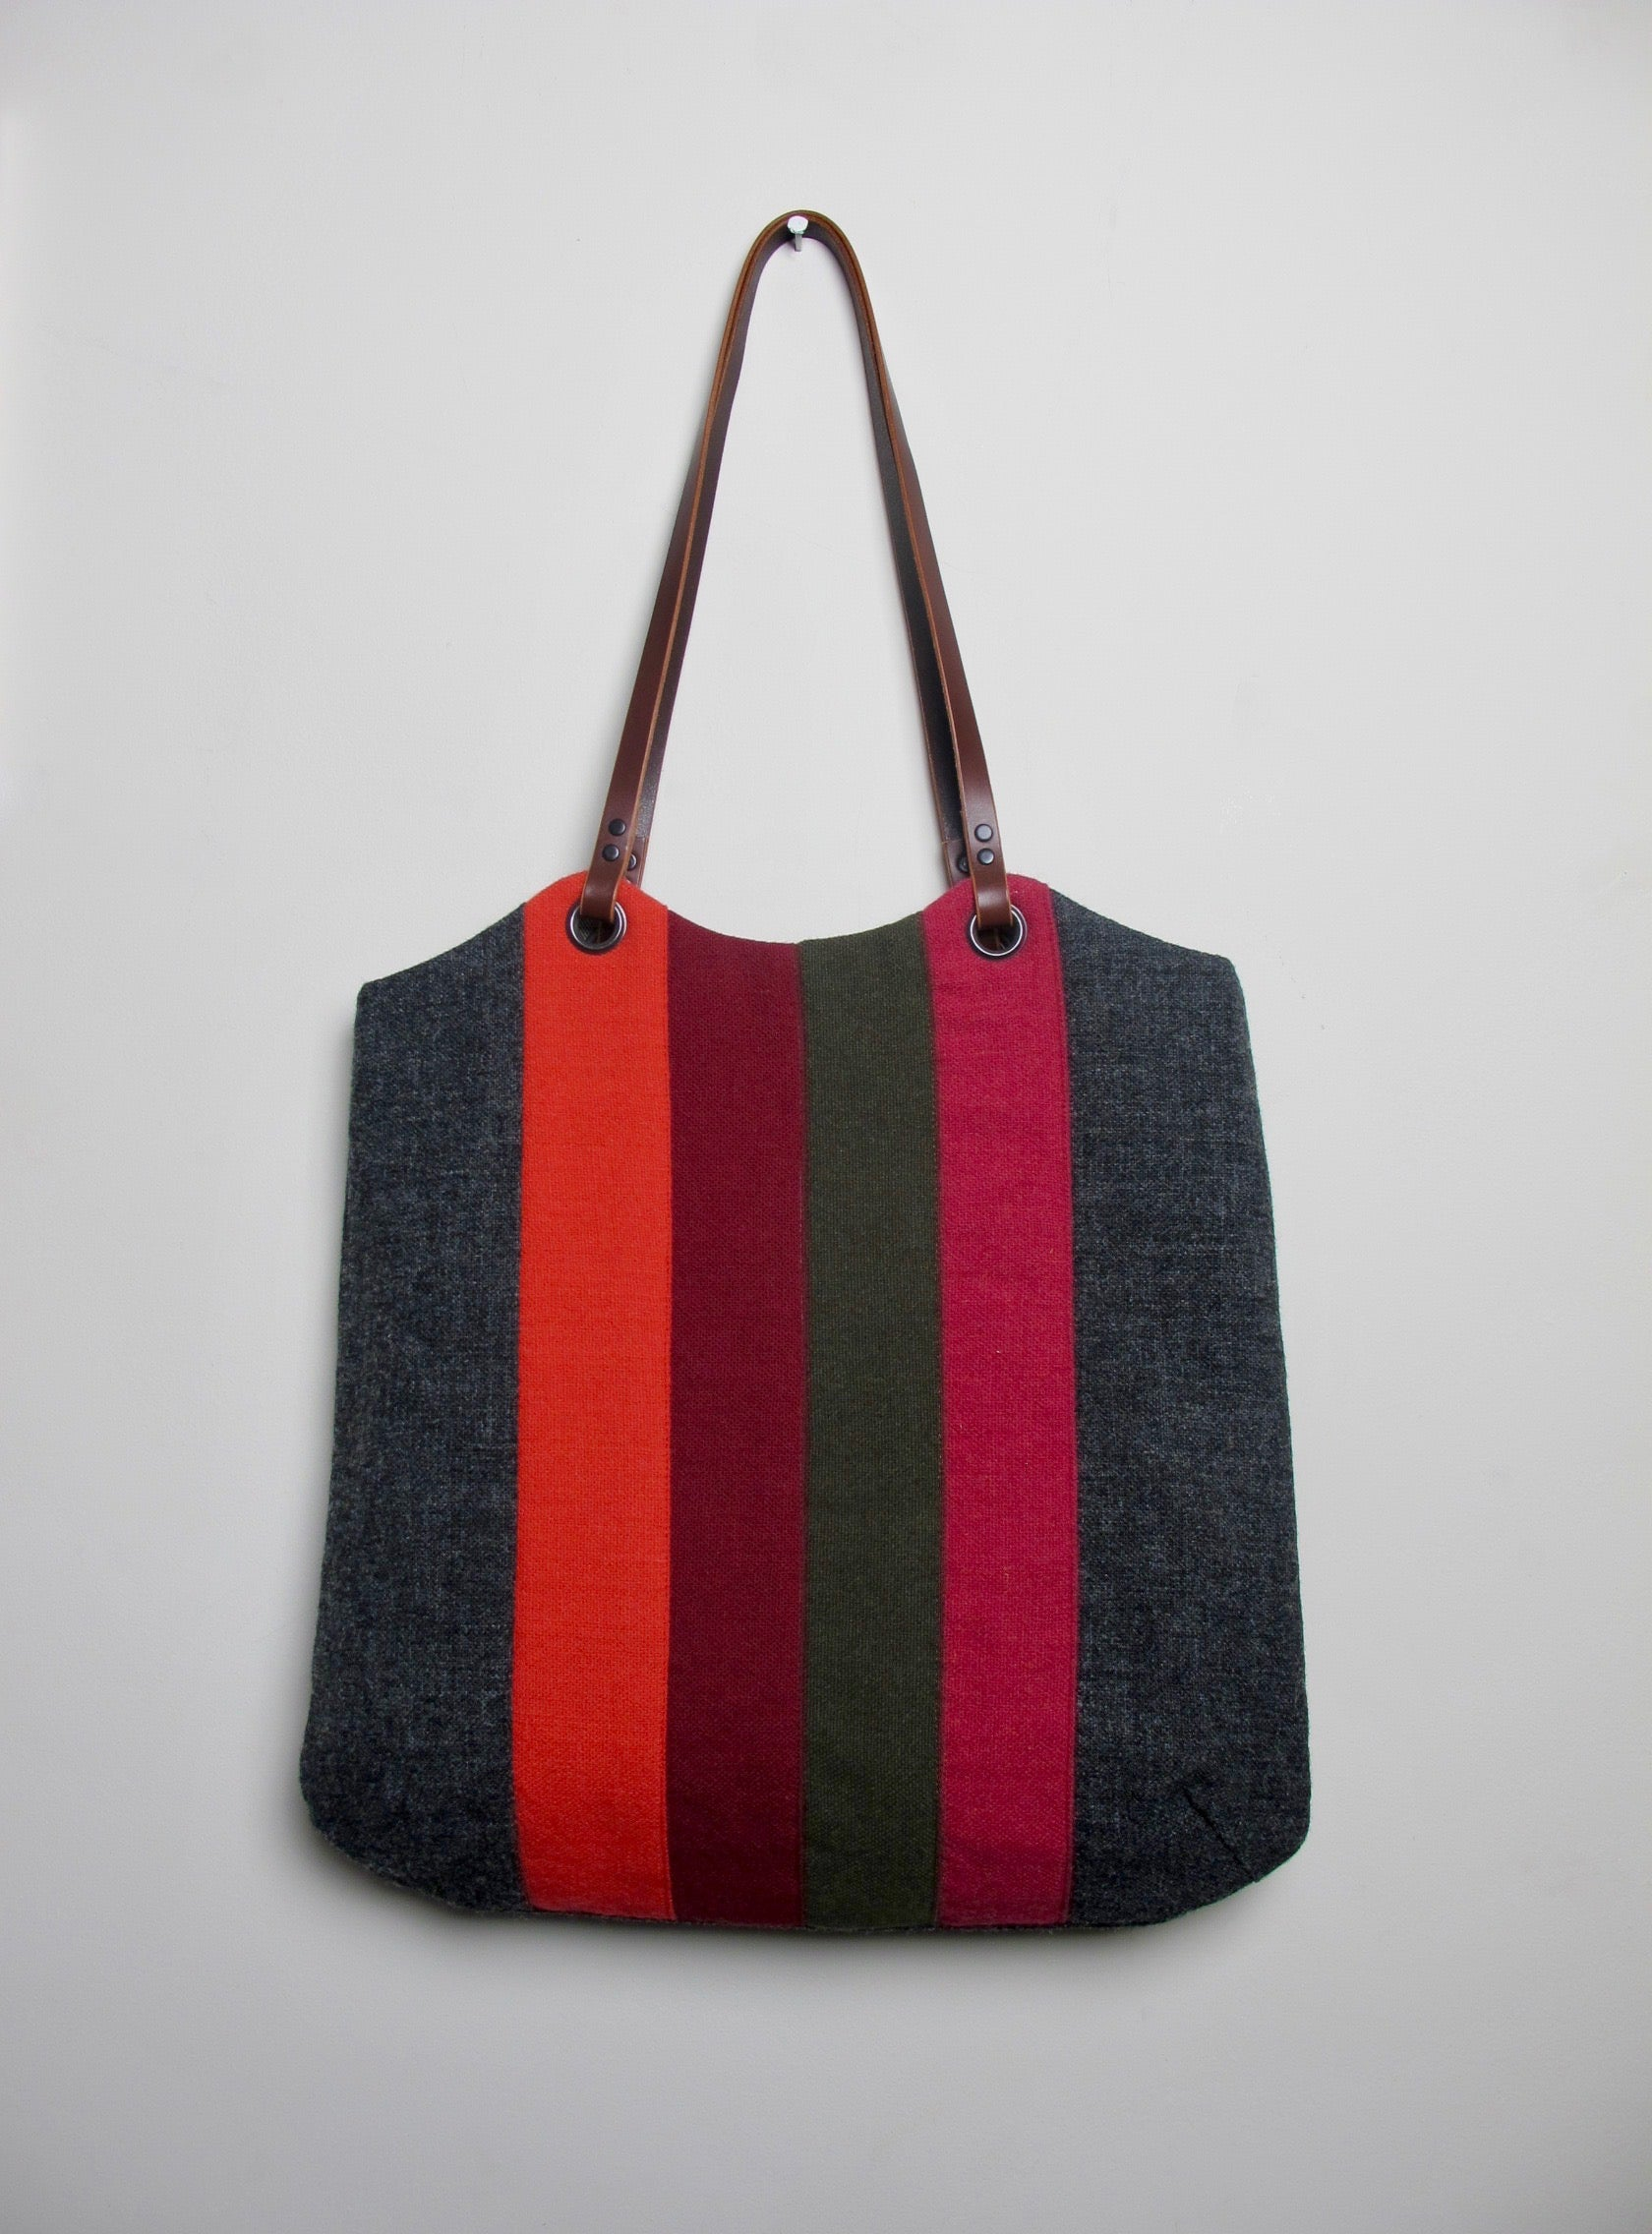 Patchwork Tote Bag - old school graphite II